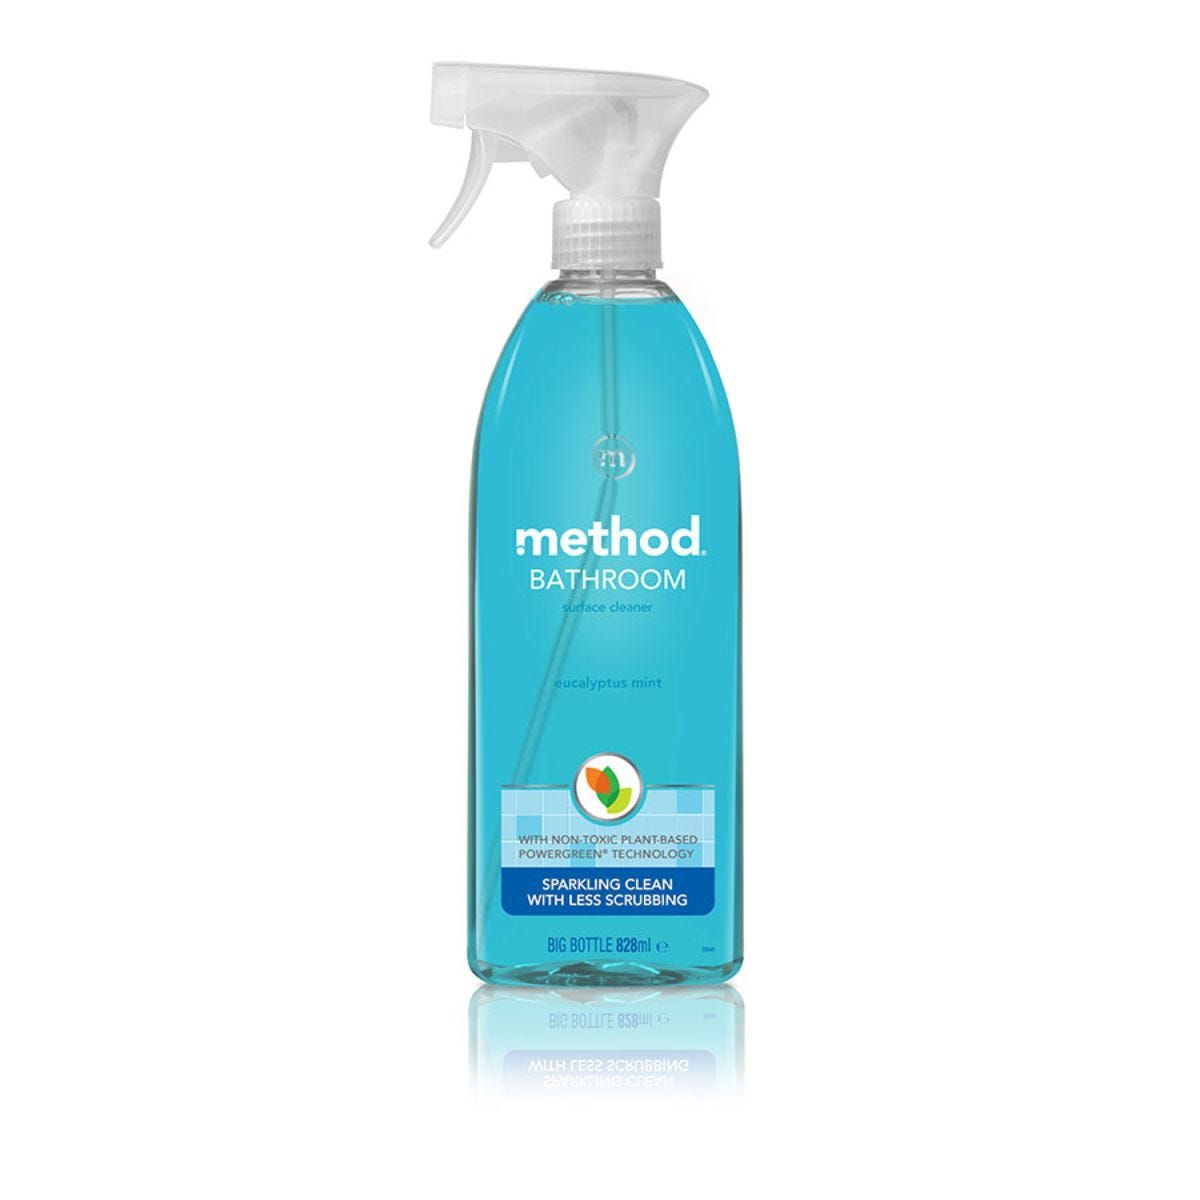 Method Bathroom Surface Cleaner - Eucalyptus Mint